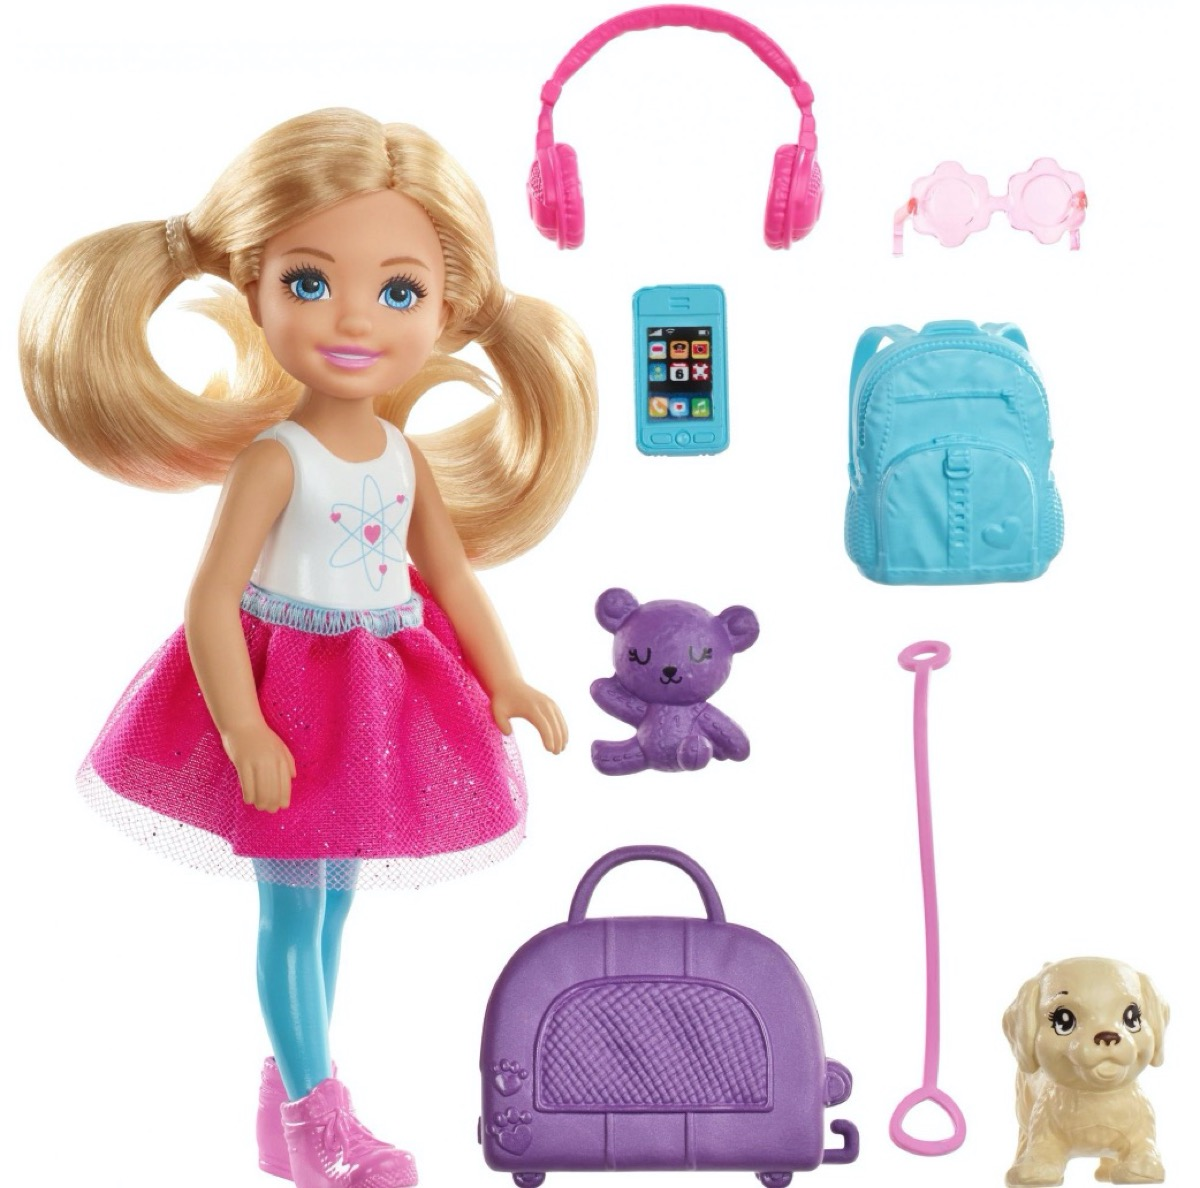 small blonde barbie doll and toy dog